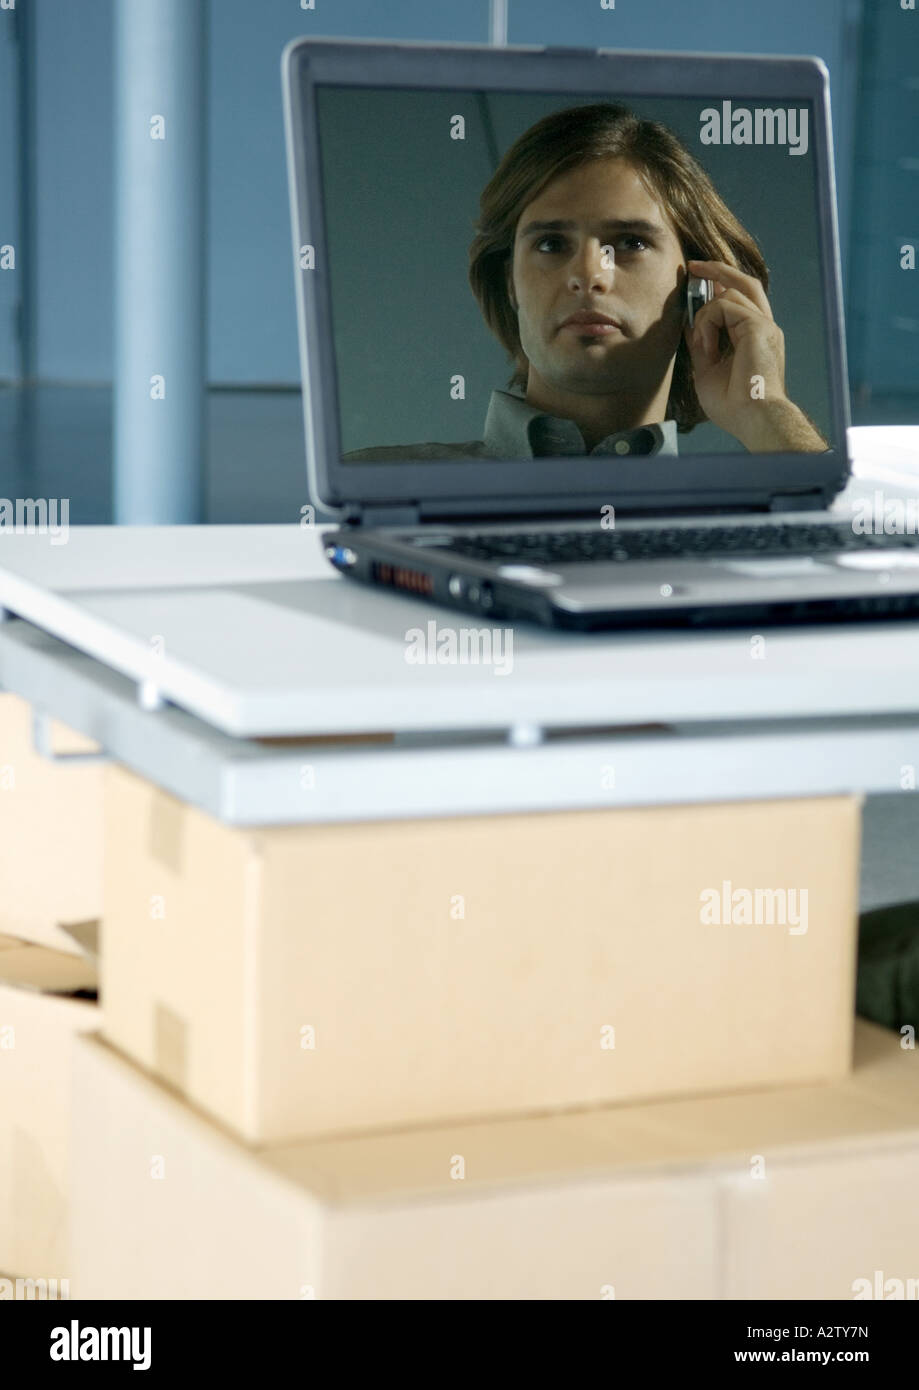 Image of man using cell phone reflected in laptop screen - Stock Image